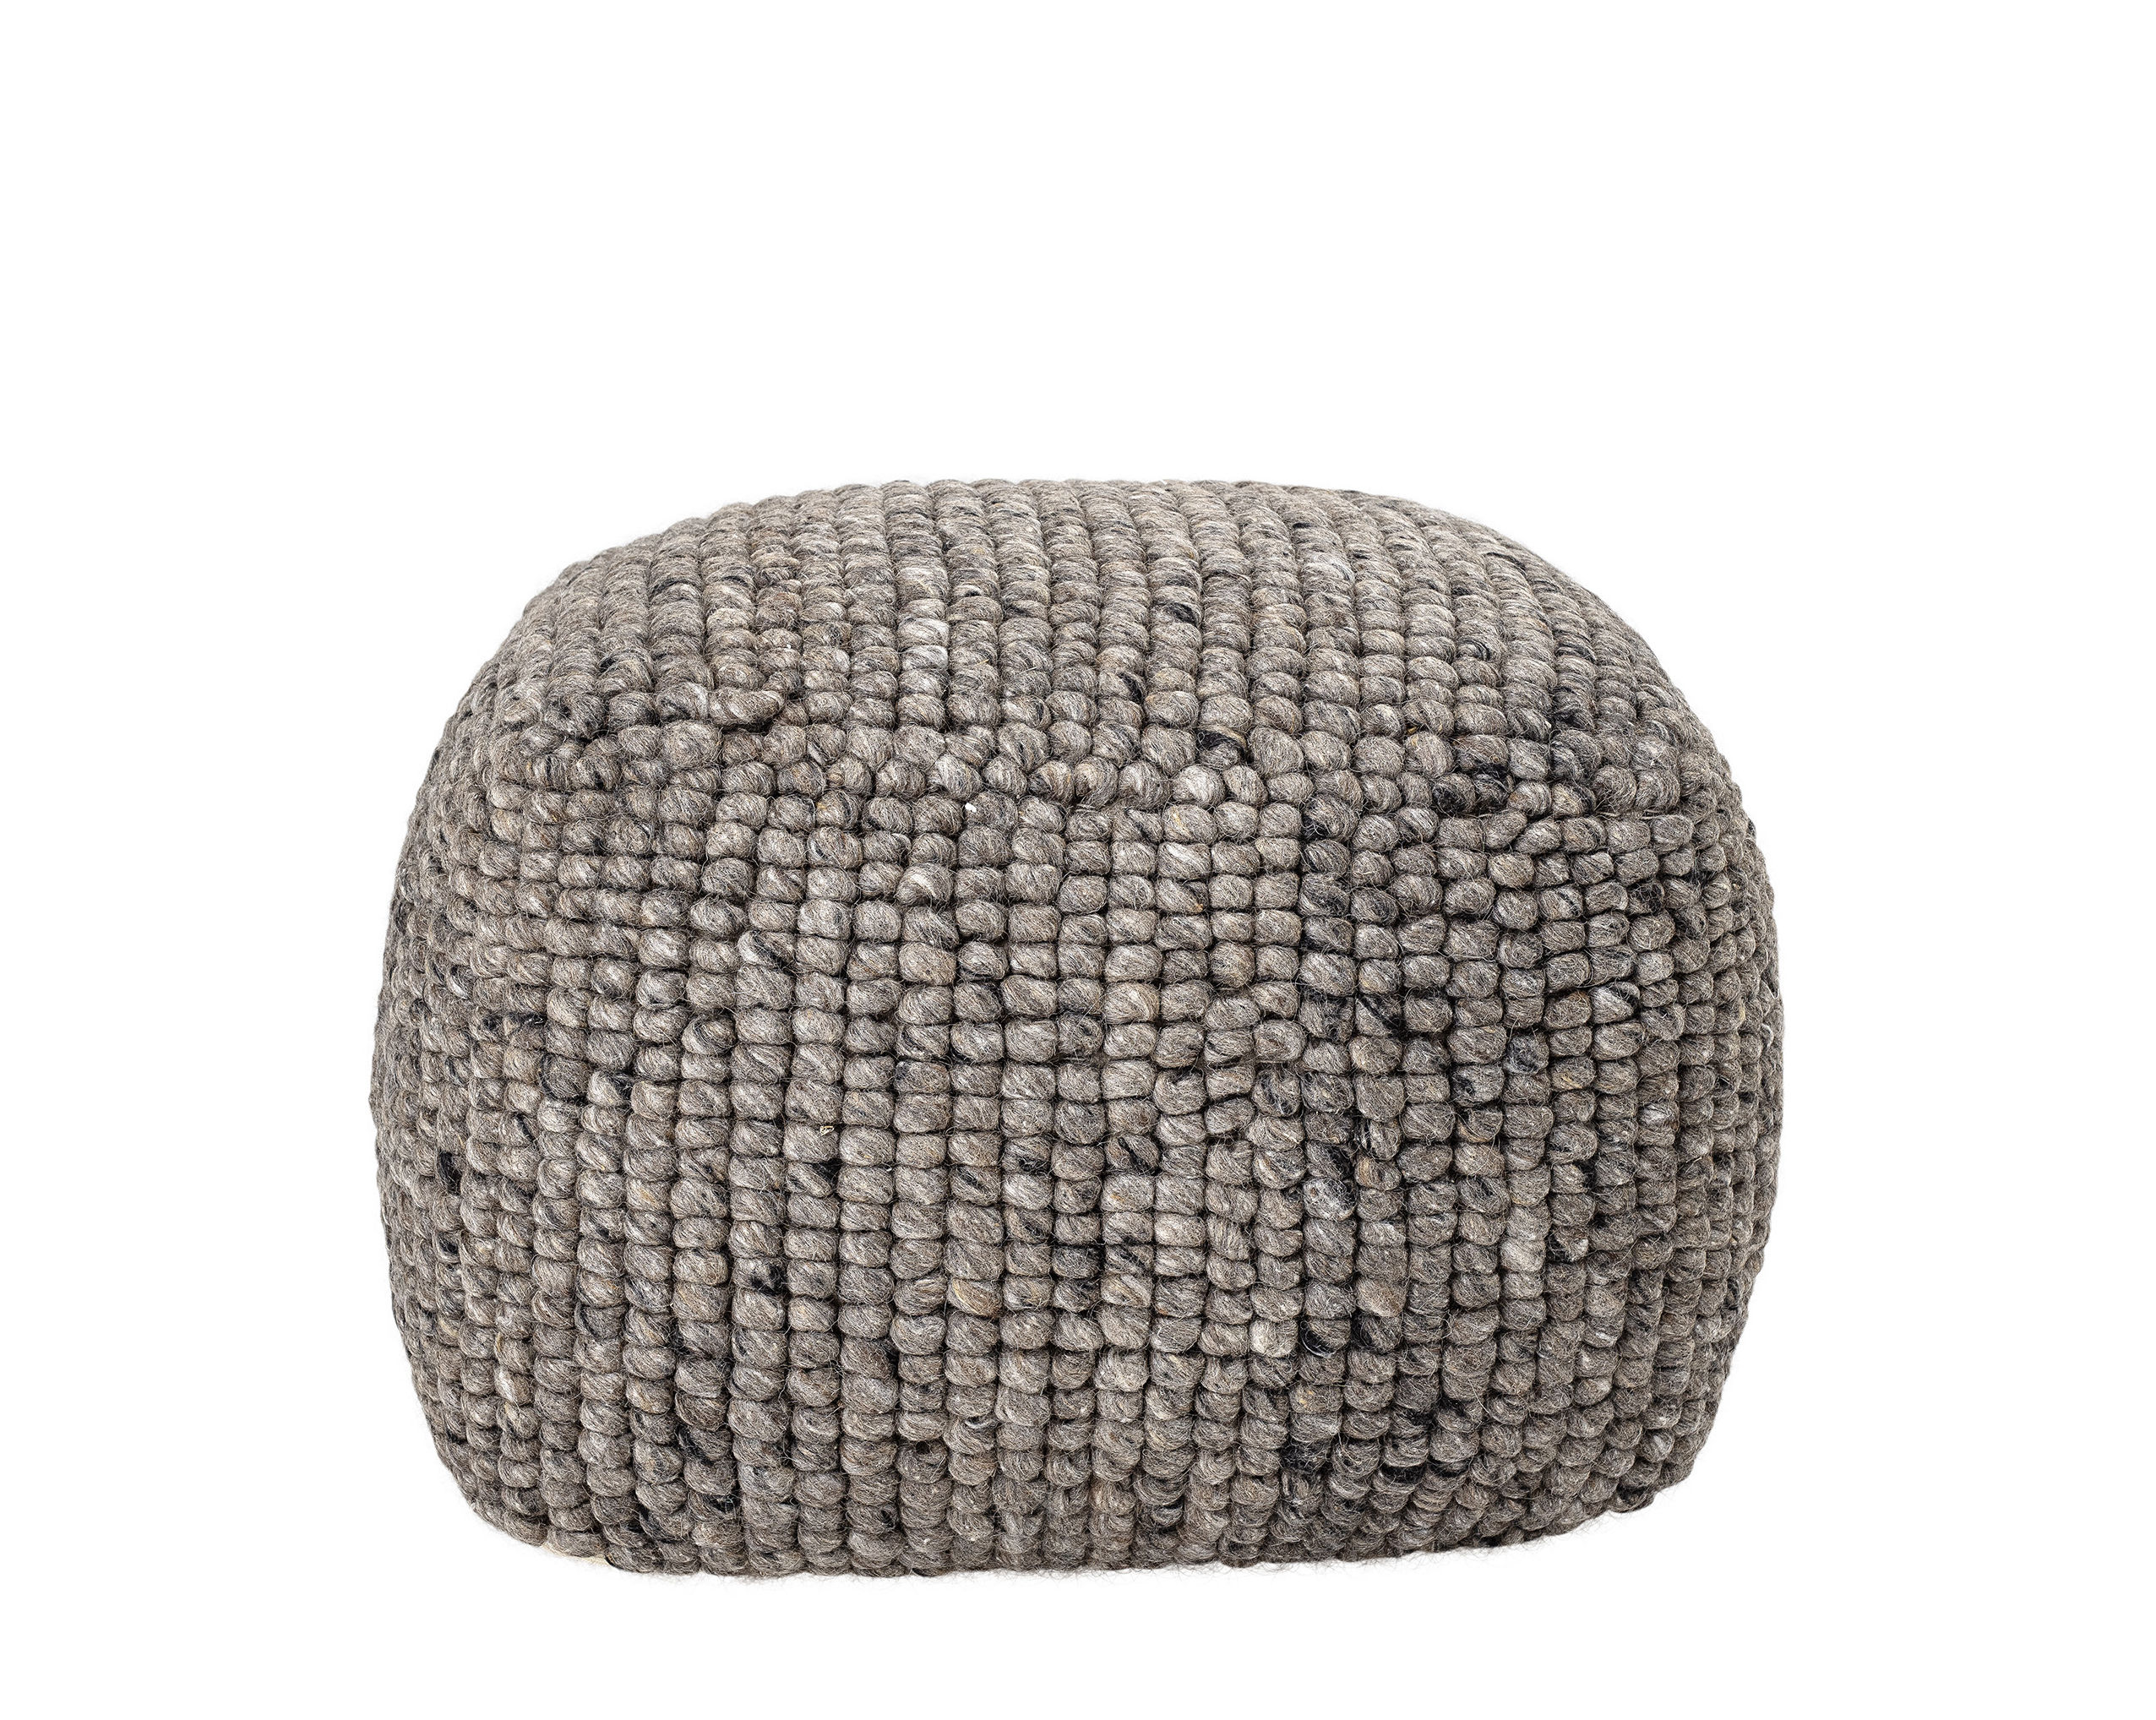 Furniture - Poufs & Floor Cushions - Boston Pouf - / Wool by Bloomingville - Grey - Wool